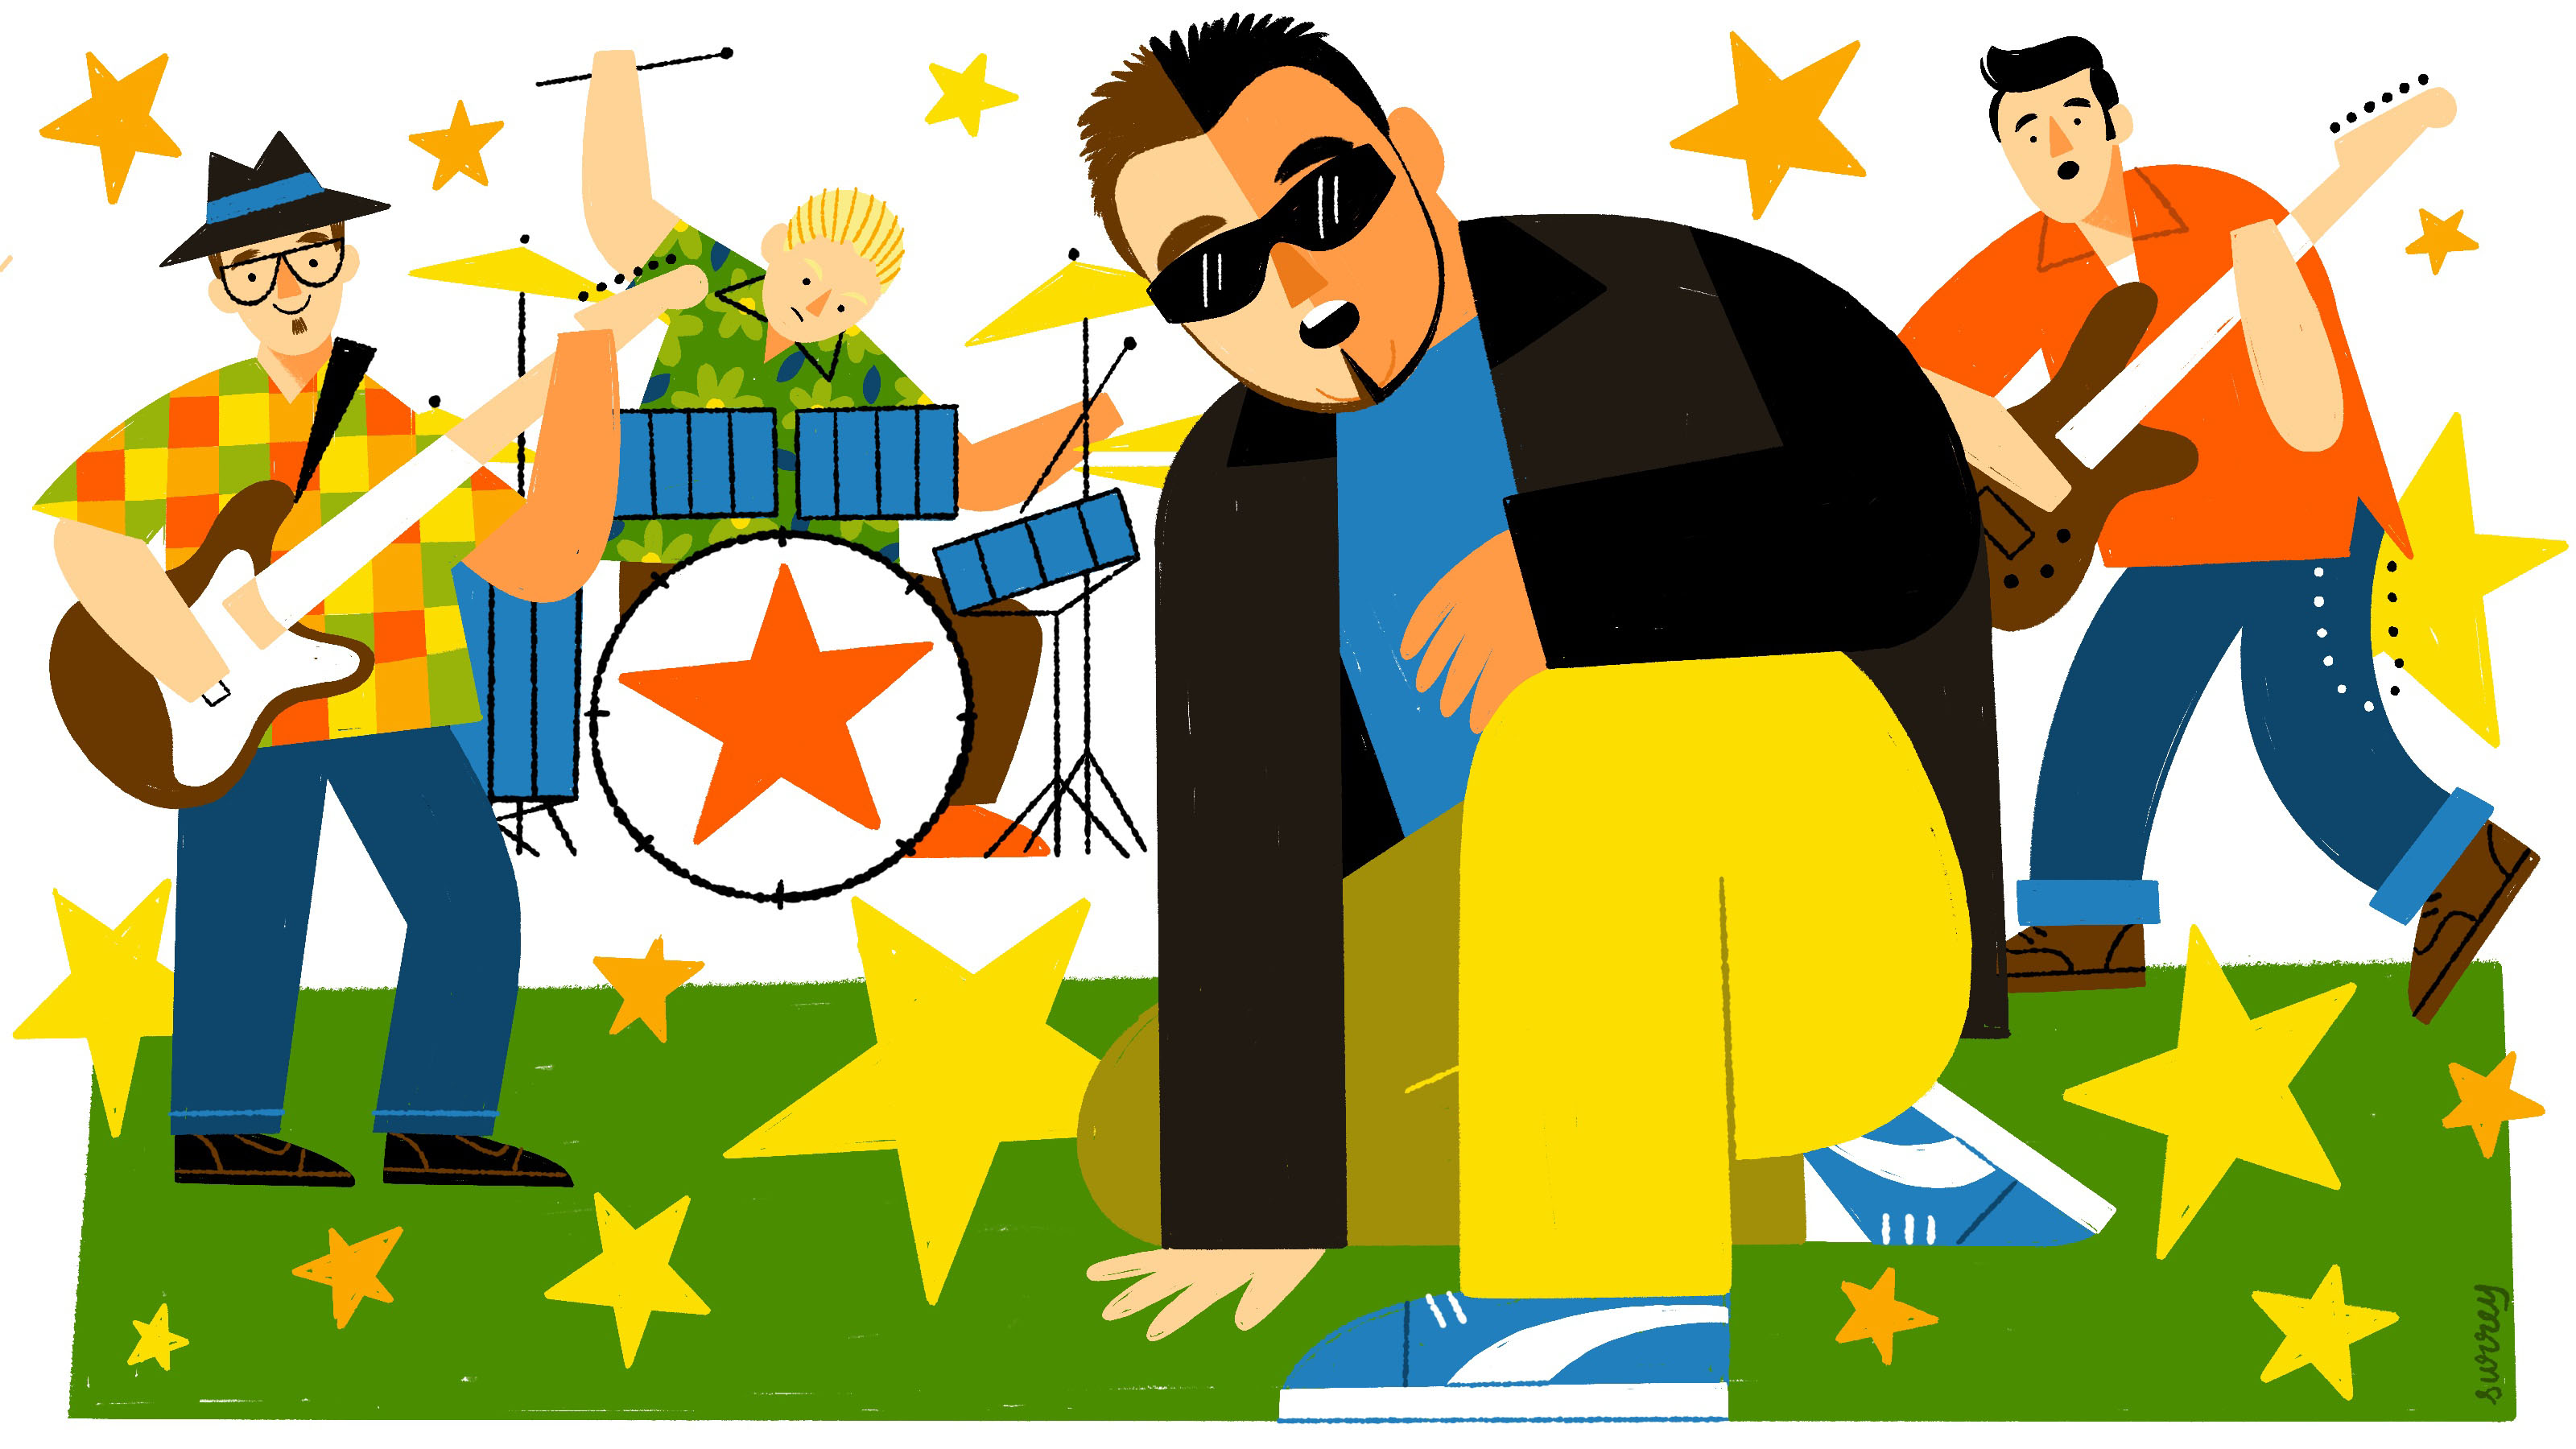 An illustration of the band Smash Mouth